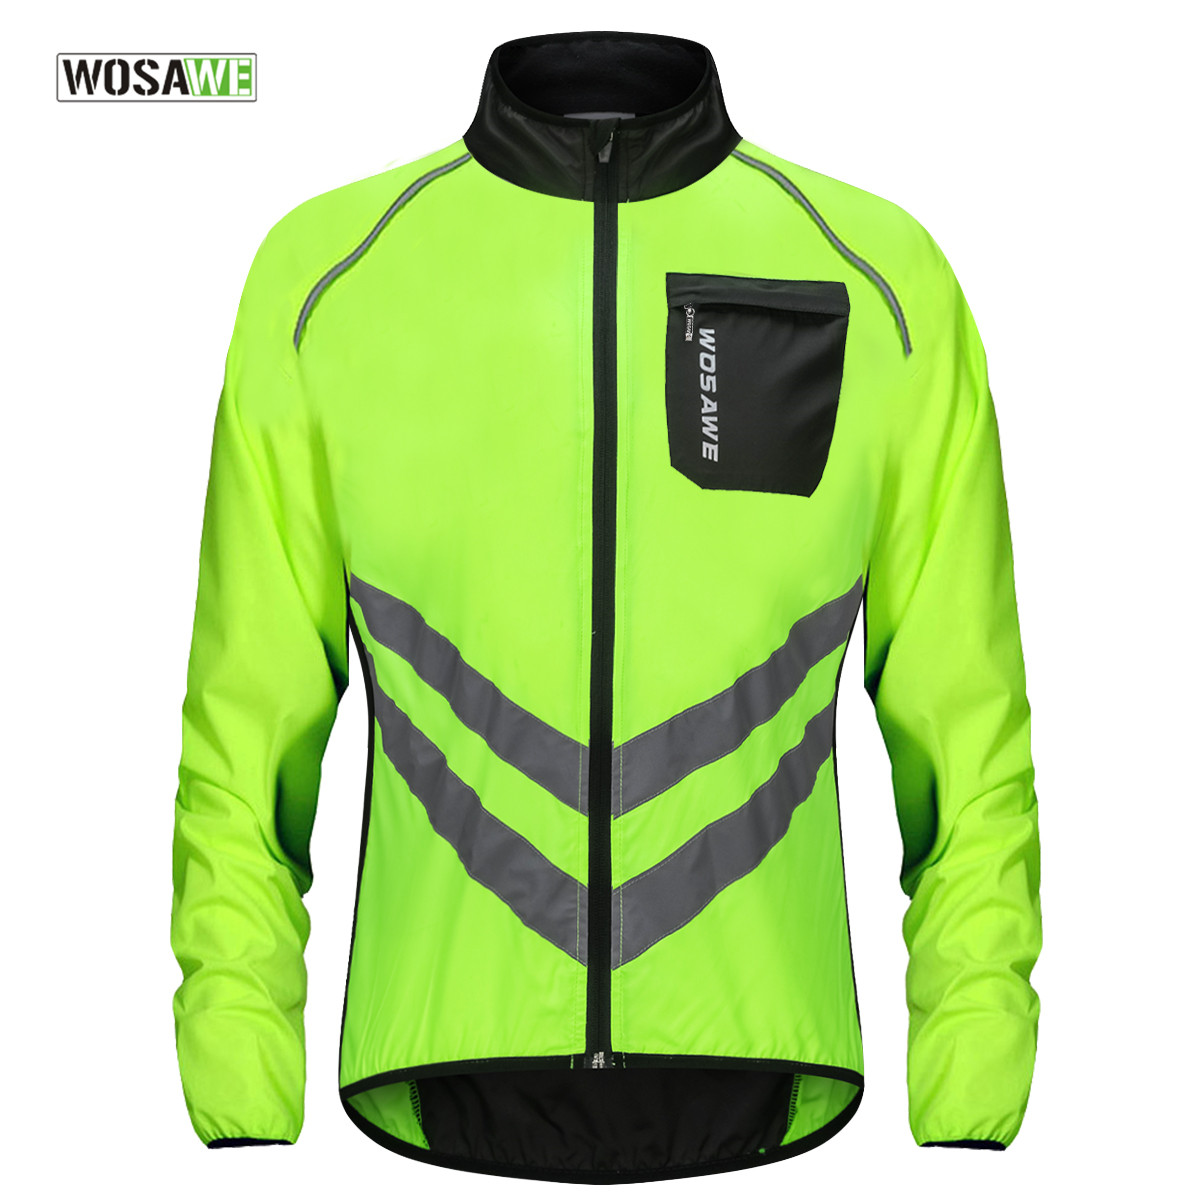 Cycling Jackets Learned Wosawe Reflective Jackets Mtb Winter Clothing Fleece Cycling Bike Breathable Green Windbreaker Windproof Waterproof Pockets Cycling Clothings